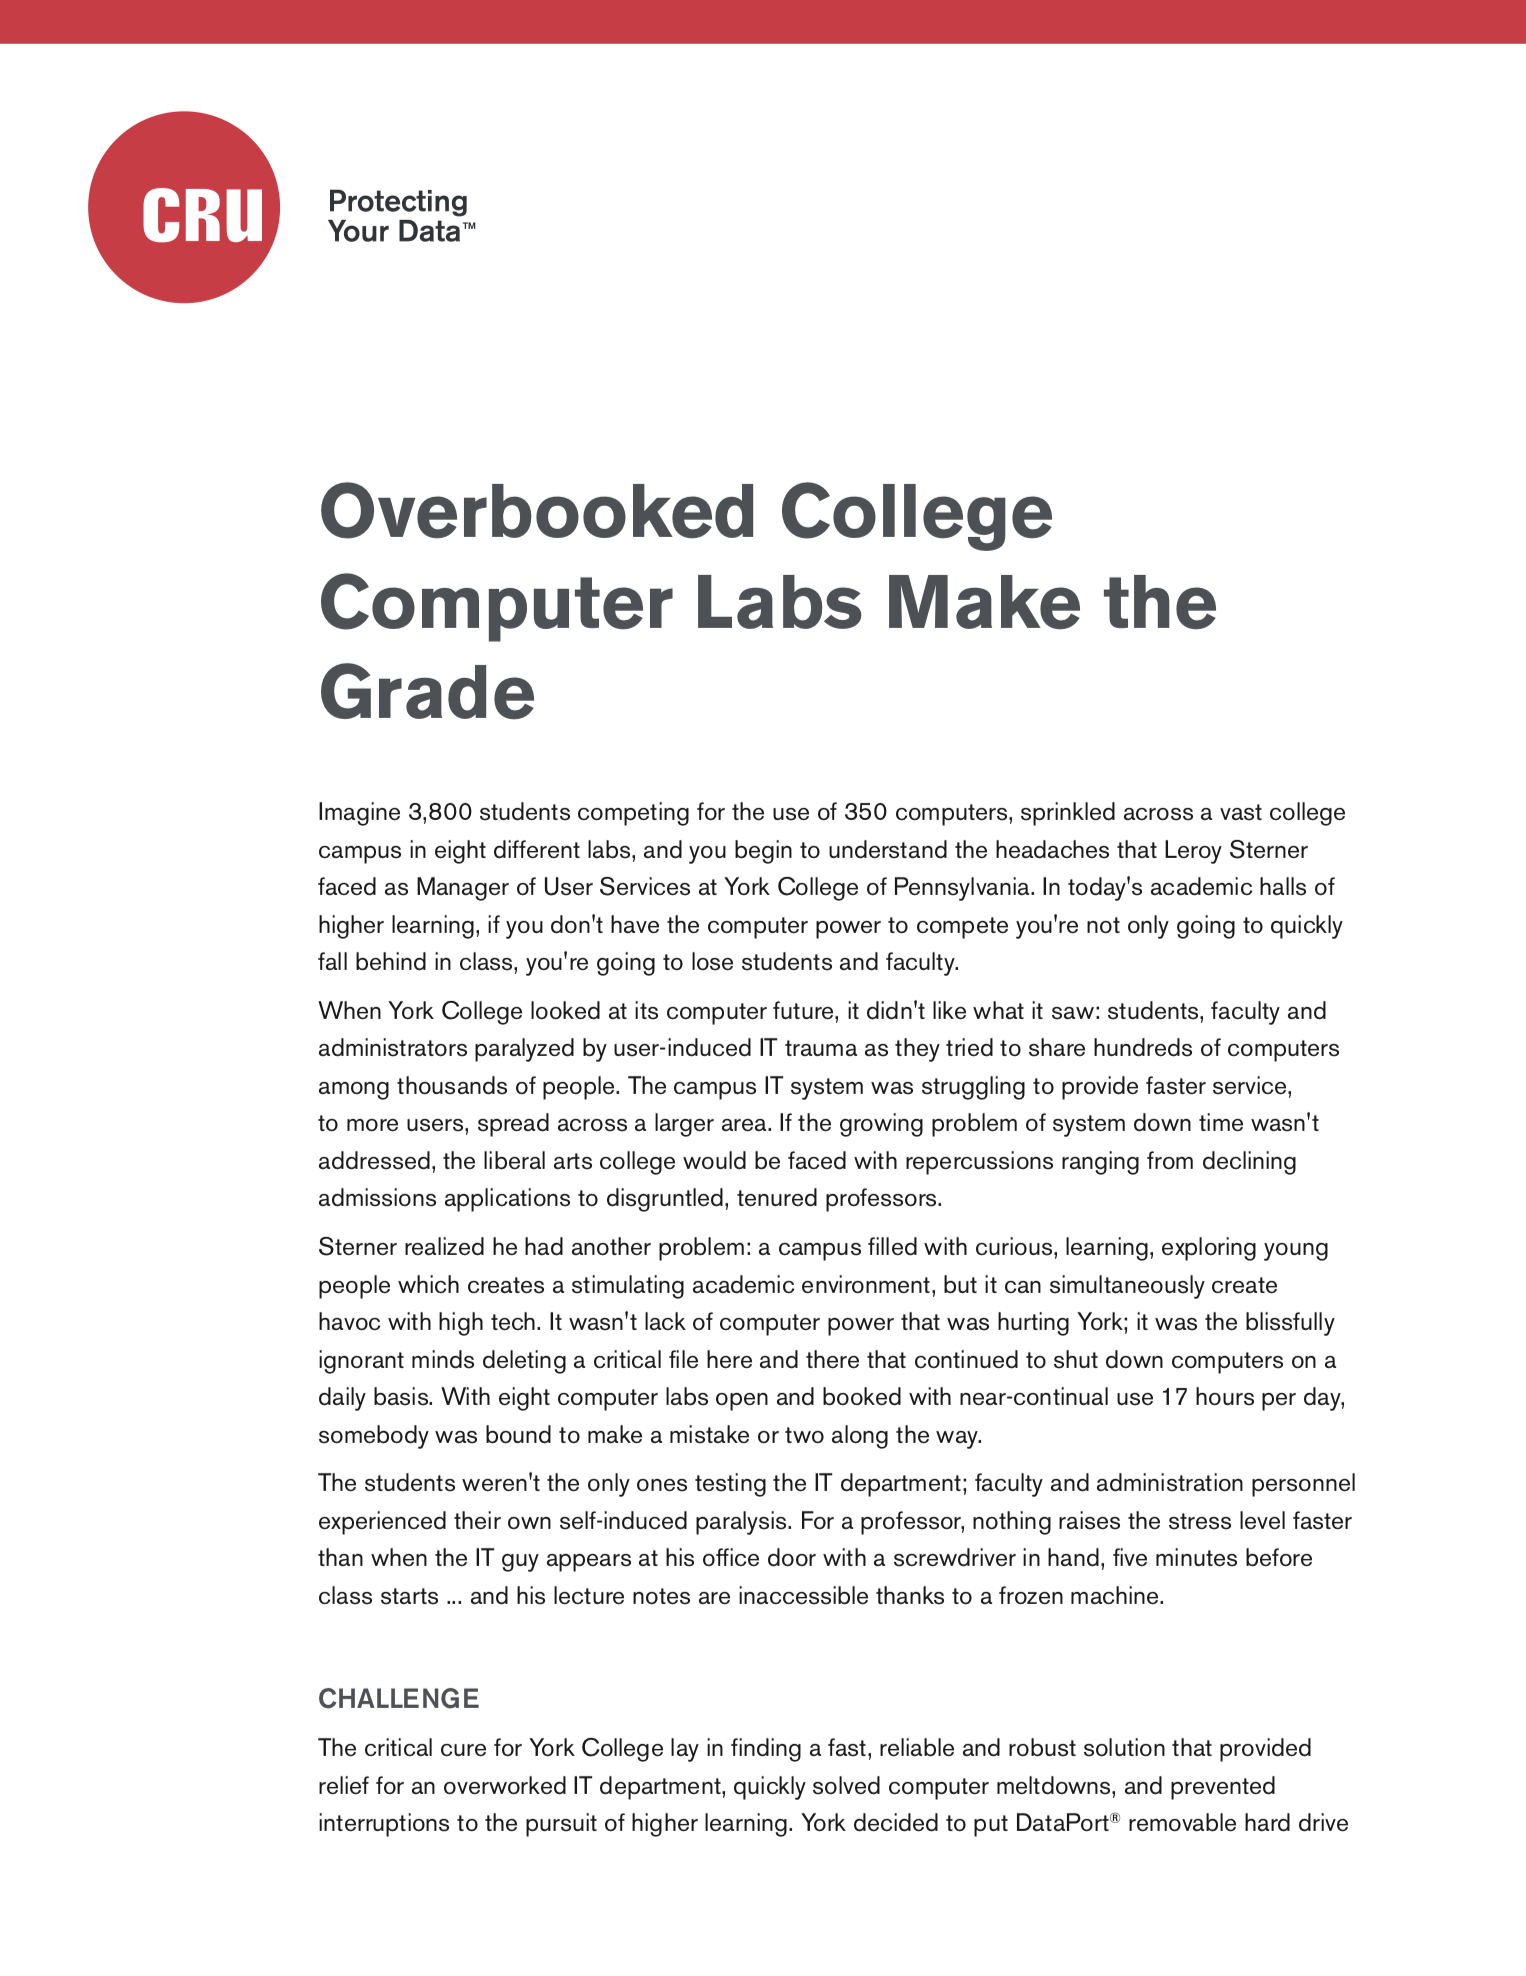 Overbooked_College_Computer_Labs_Make_the_Grade-1.png